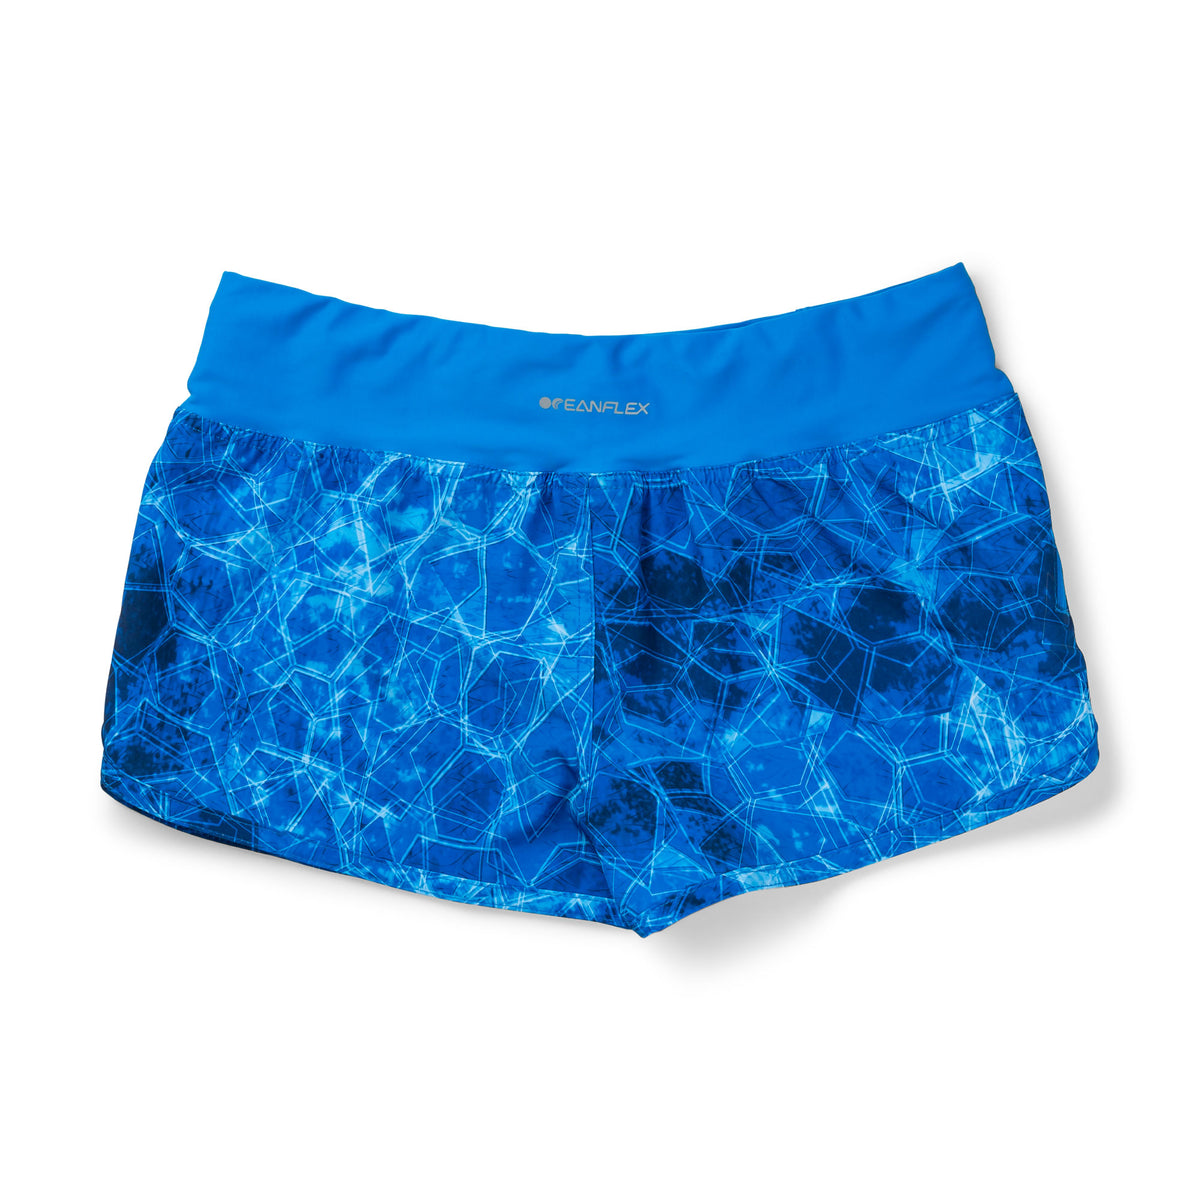 Bali Active Fishing Shorts Big Image - 2